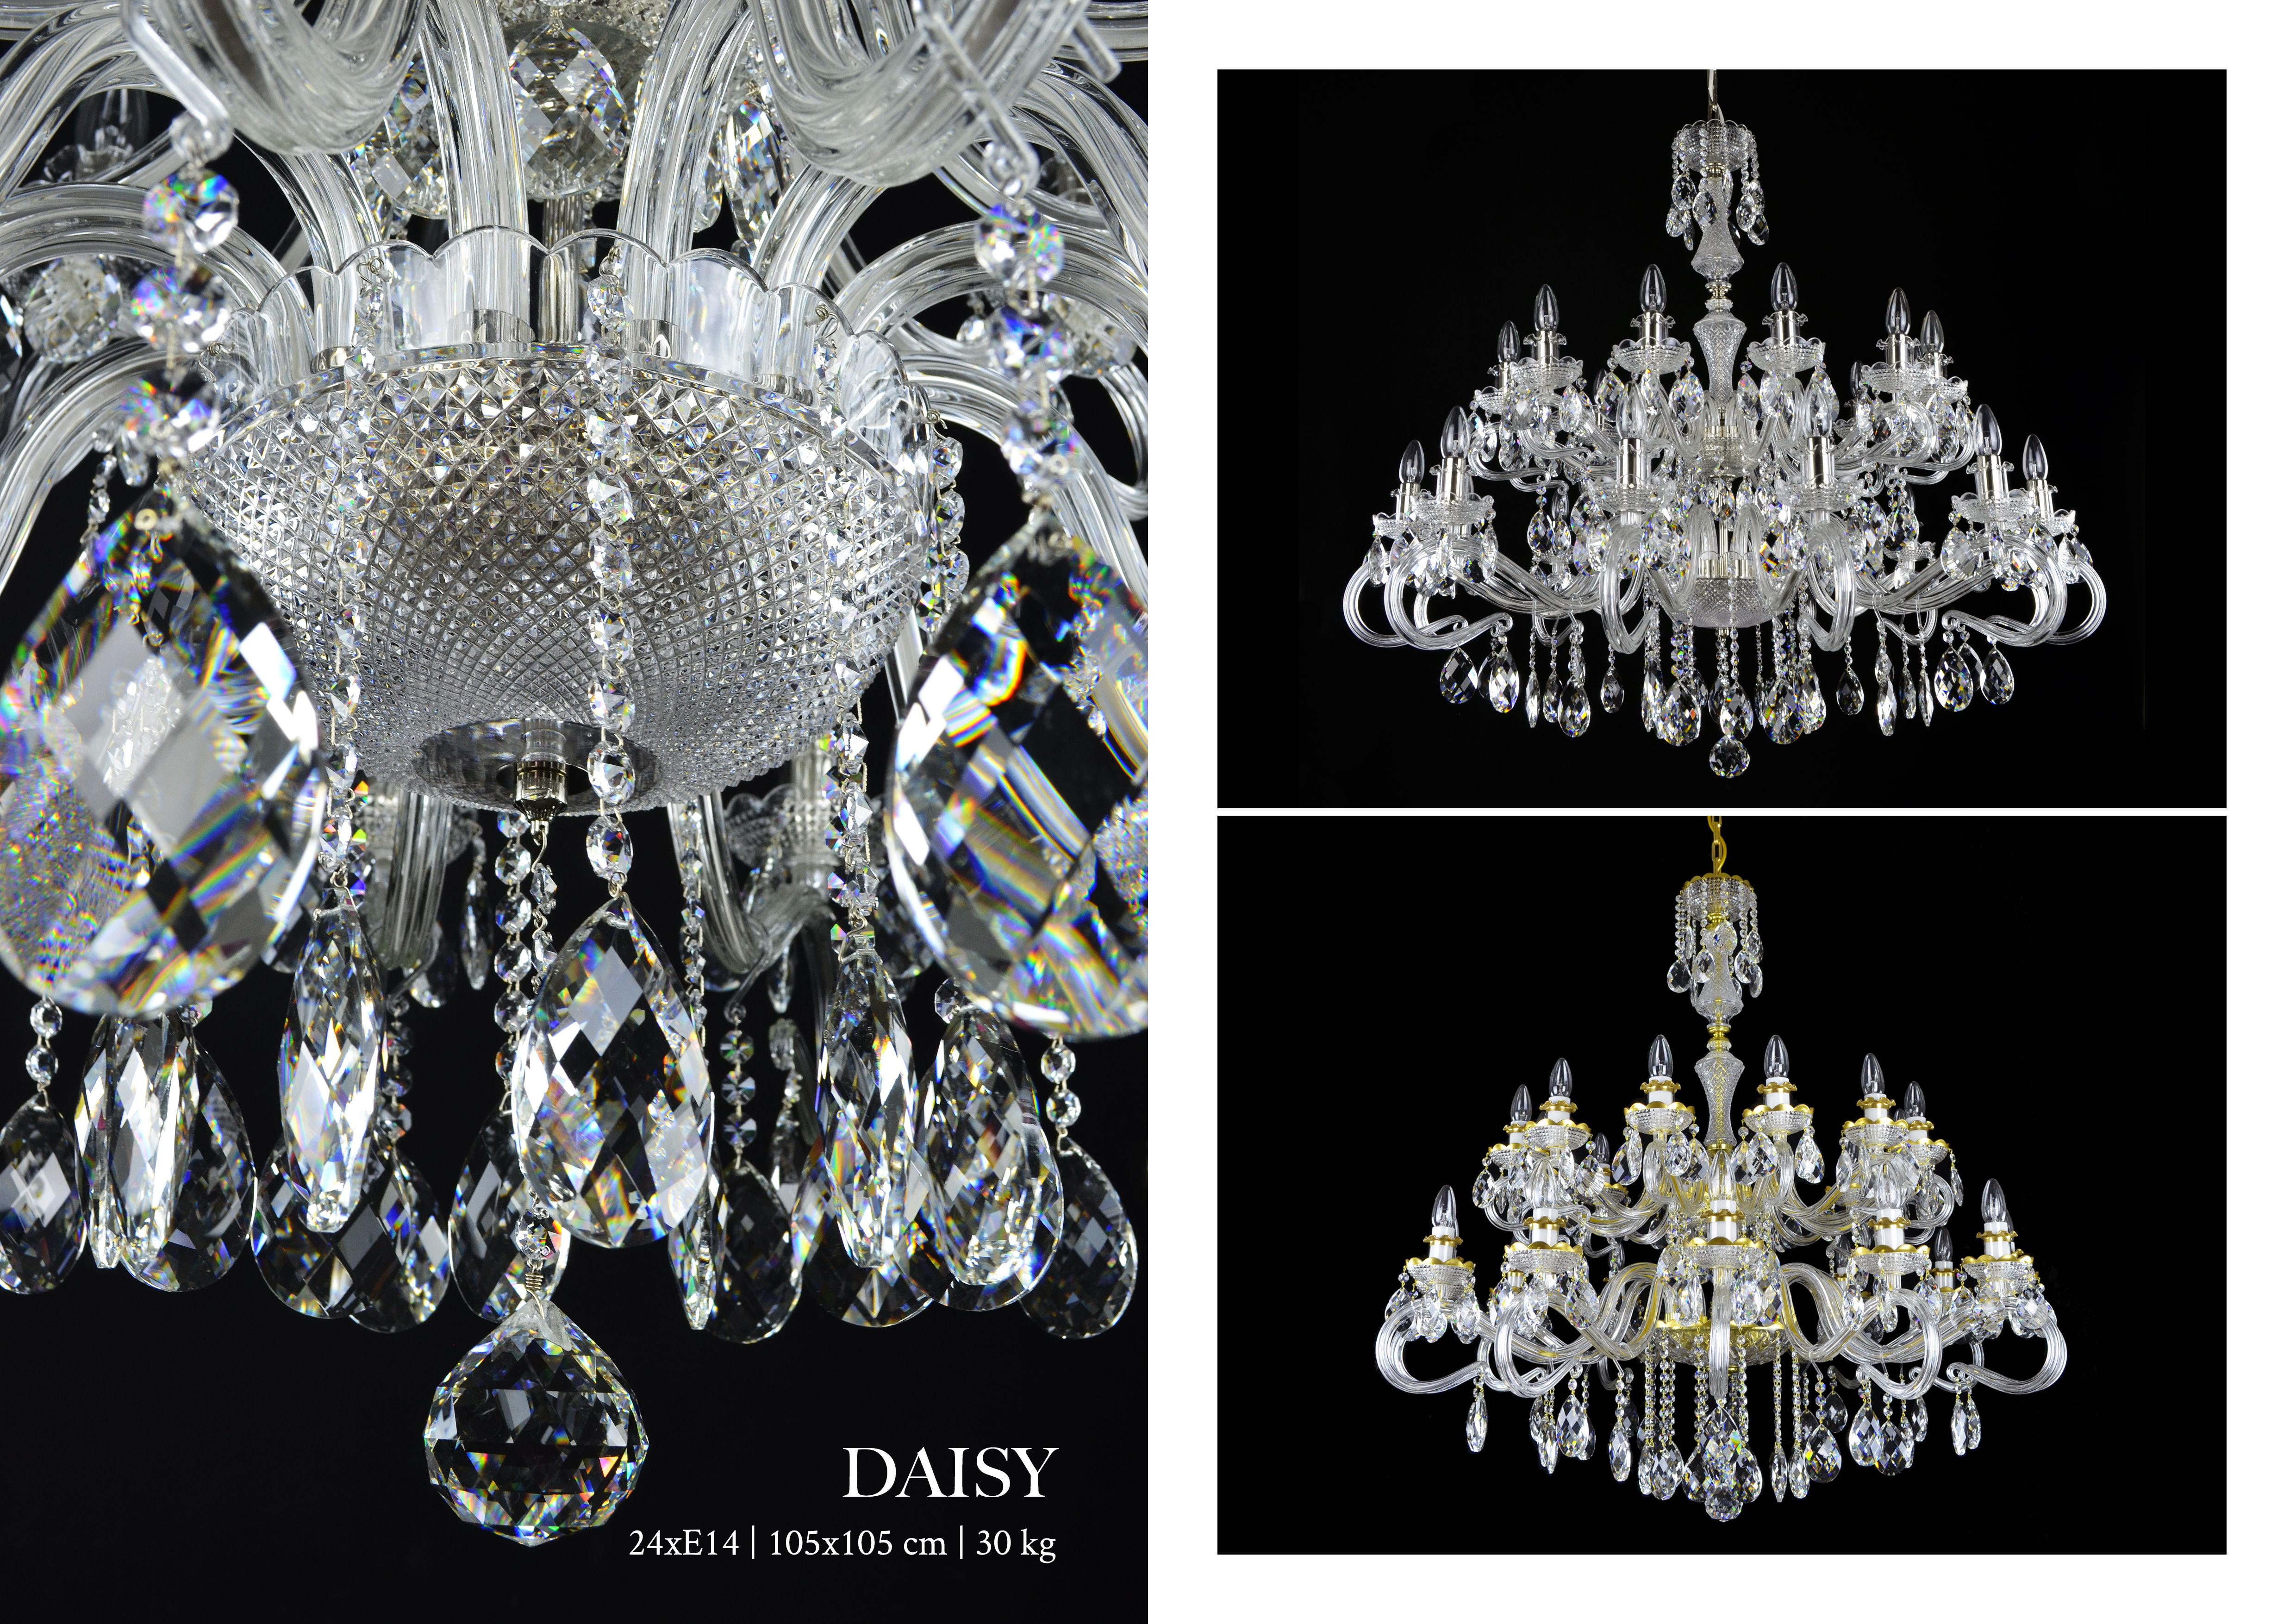 Introducing The Daisy Collection From Our Upcoming Catalogue Of